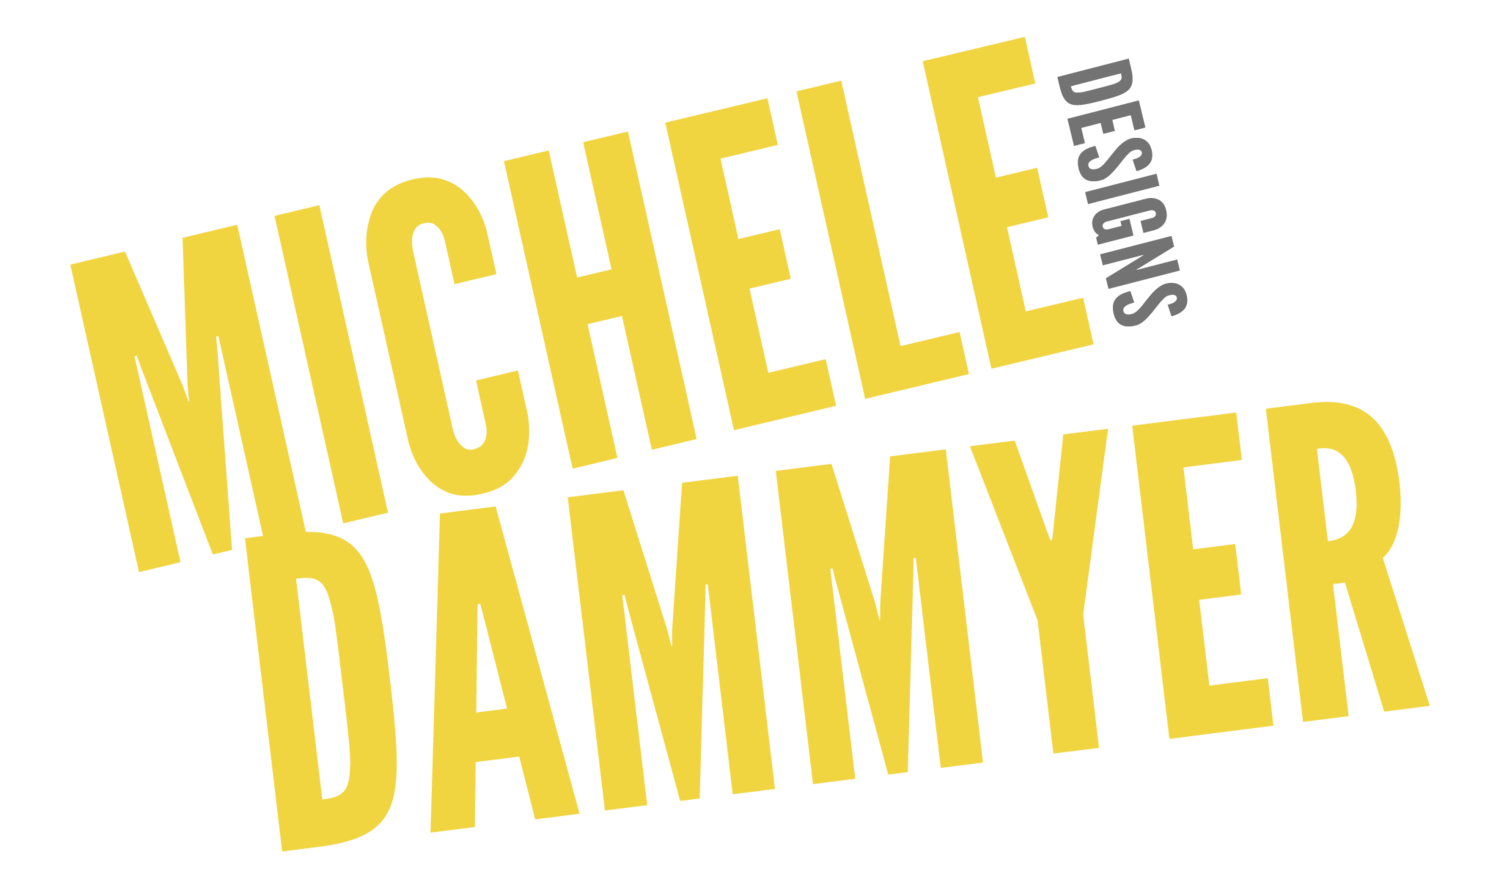 MICHELE DAMMYER